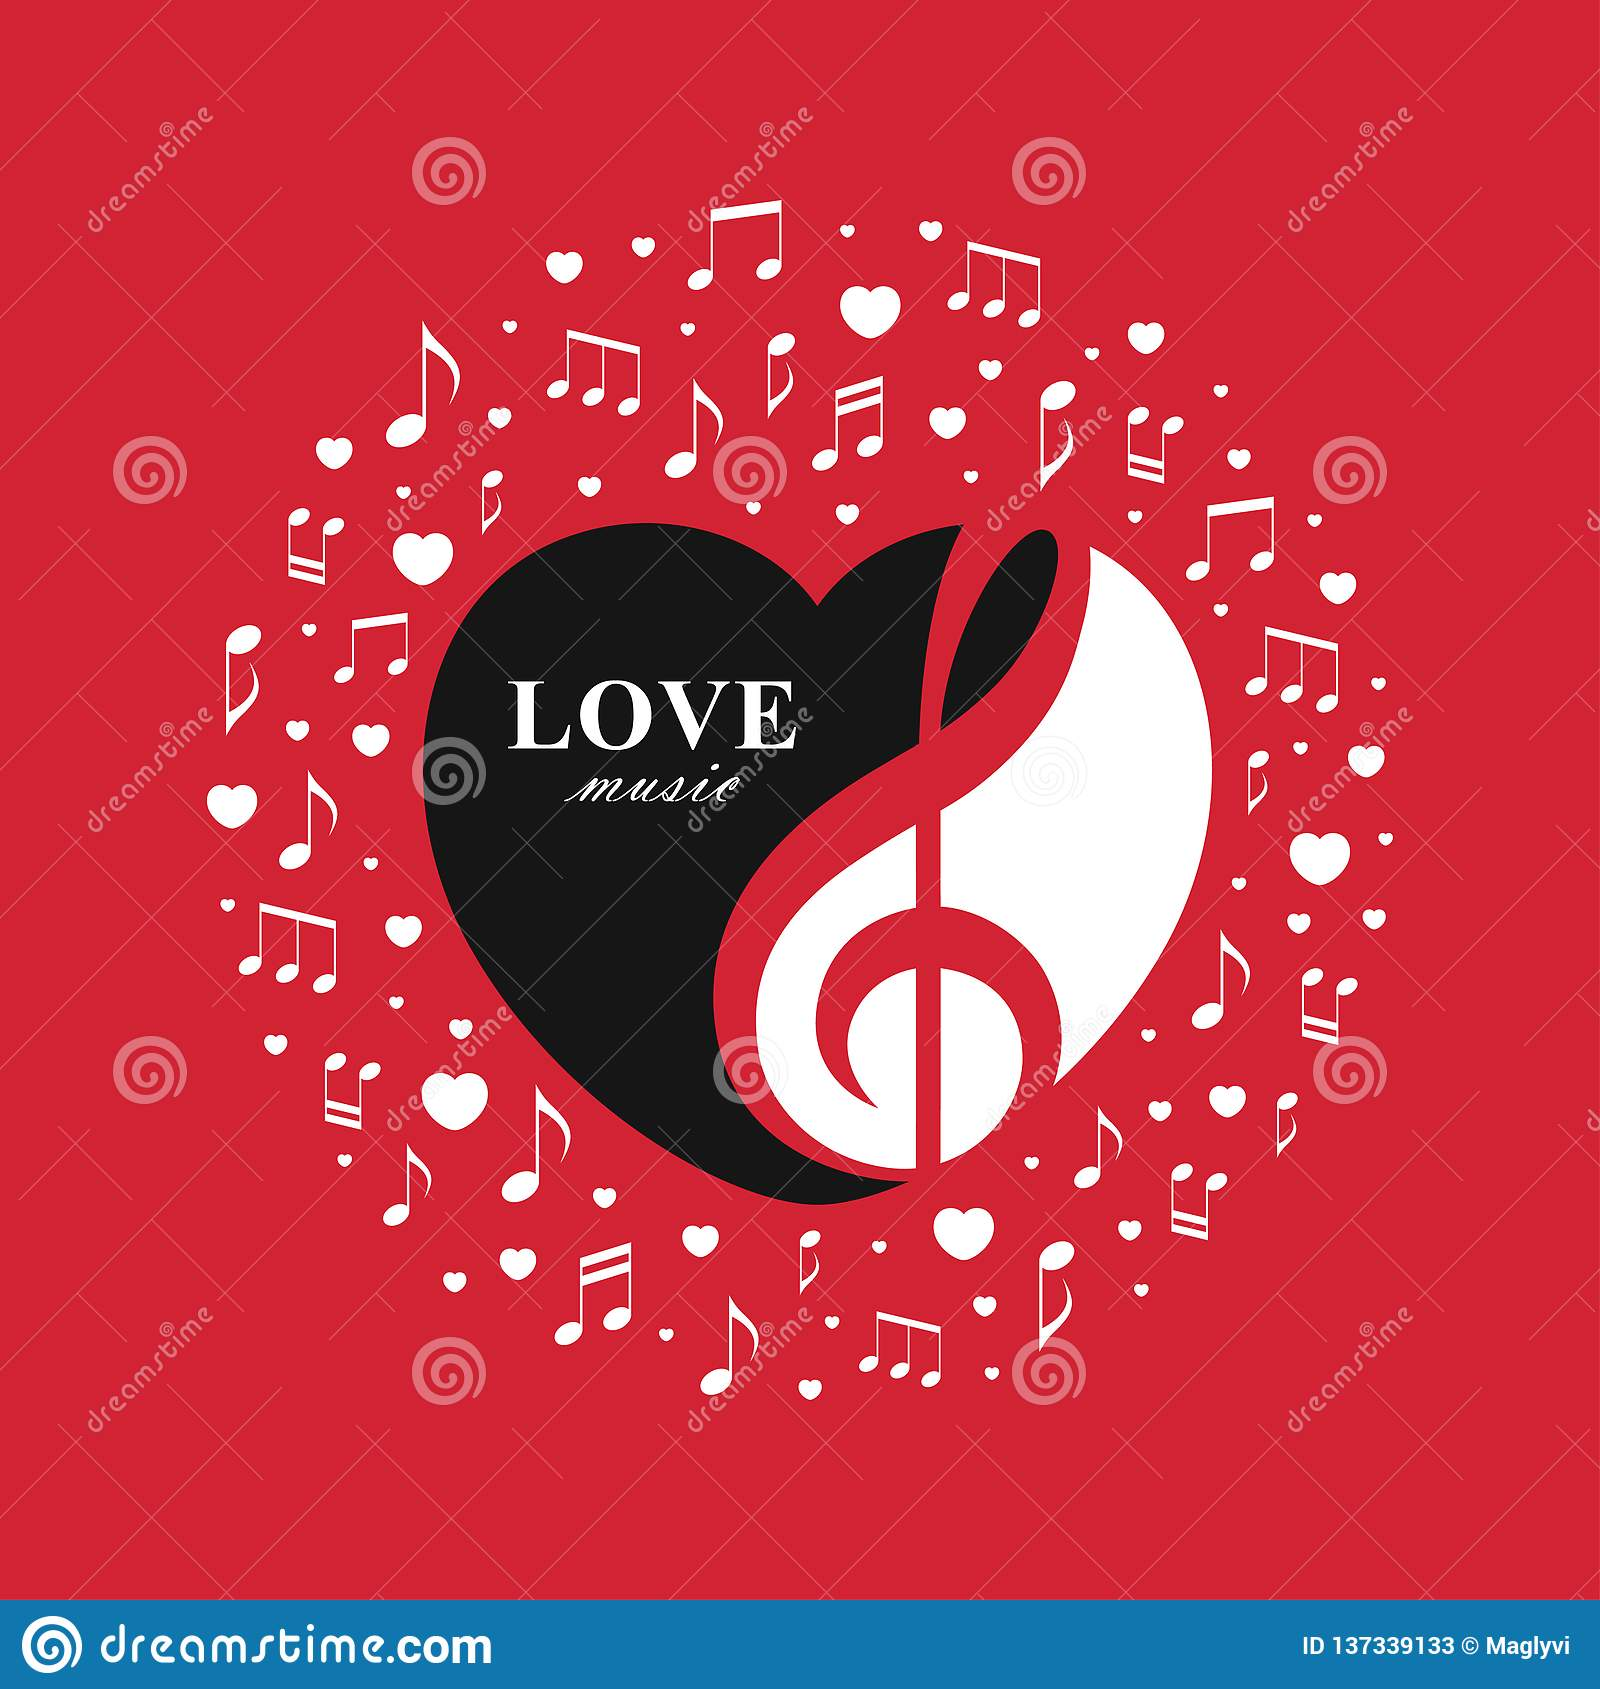 Love Music Red Banner With Treble Clef Inside The Heart